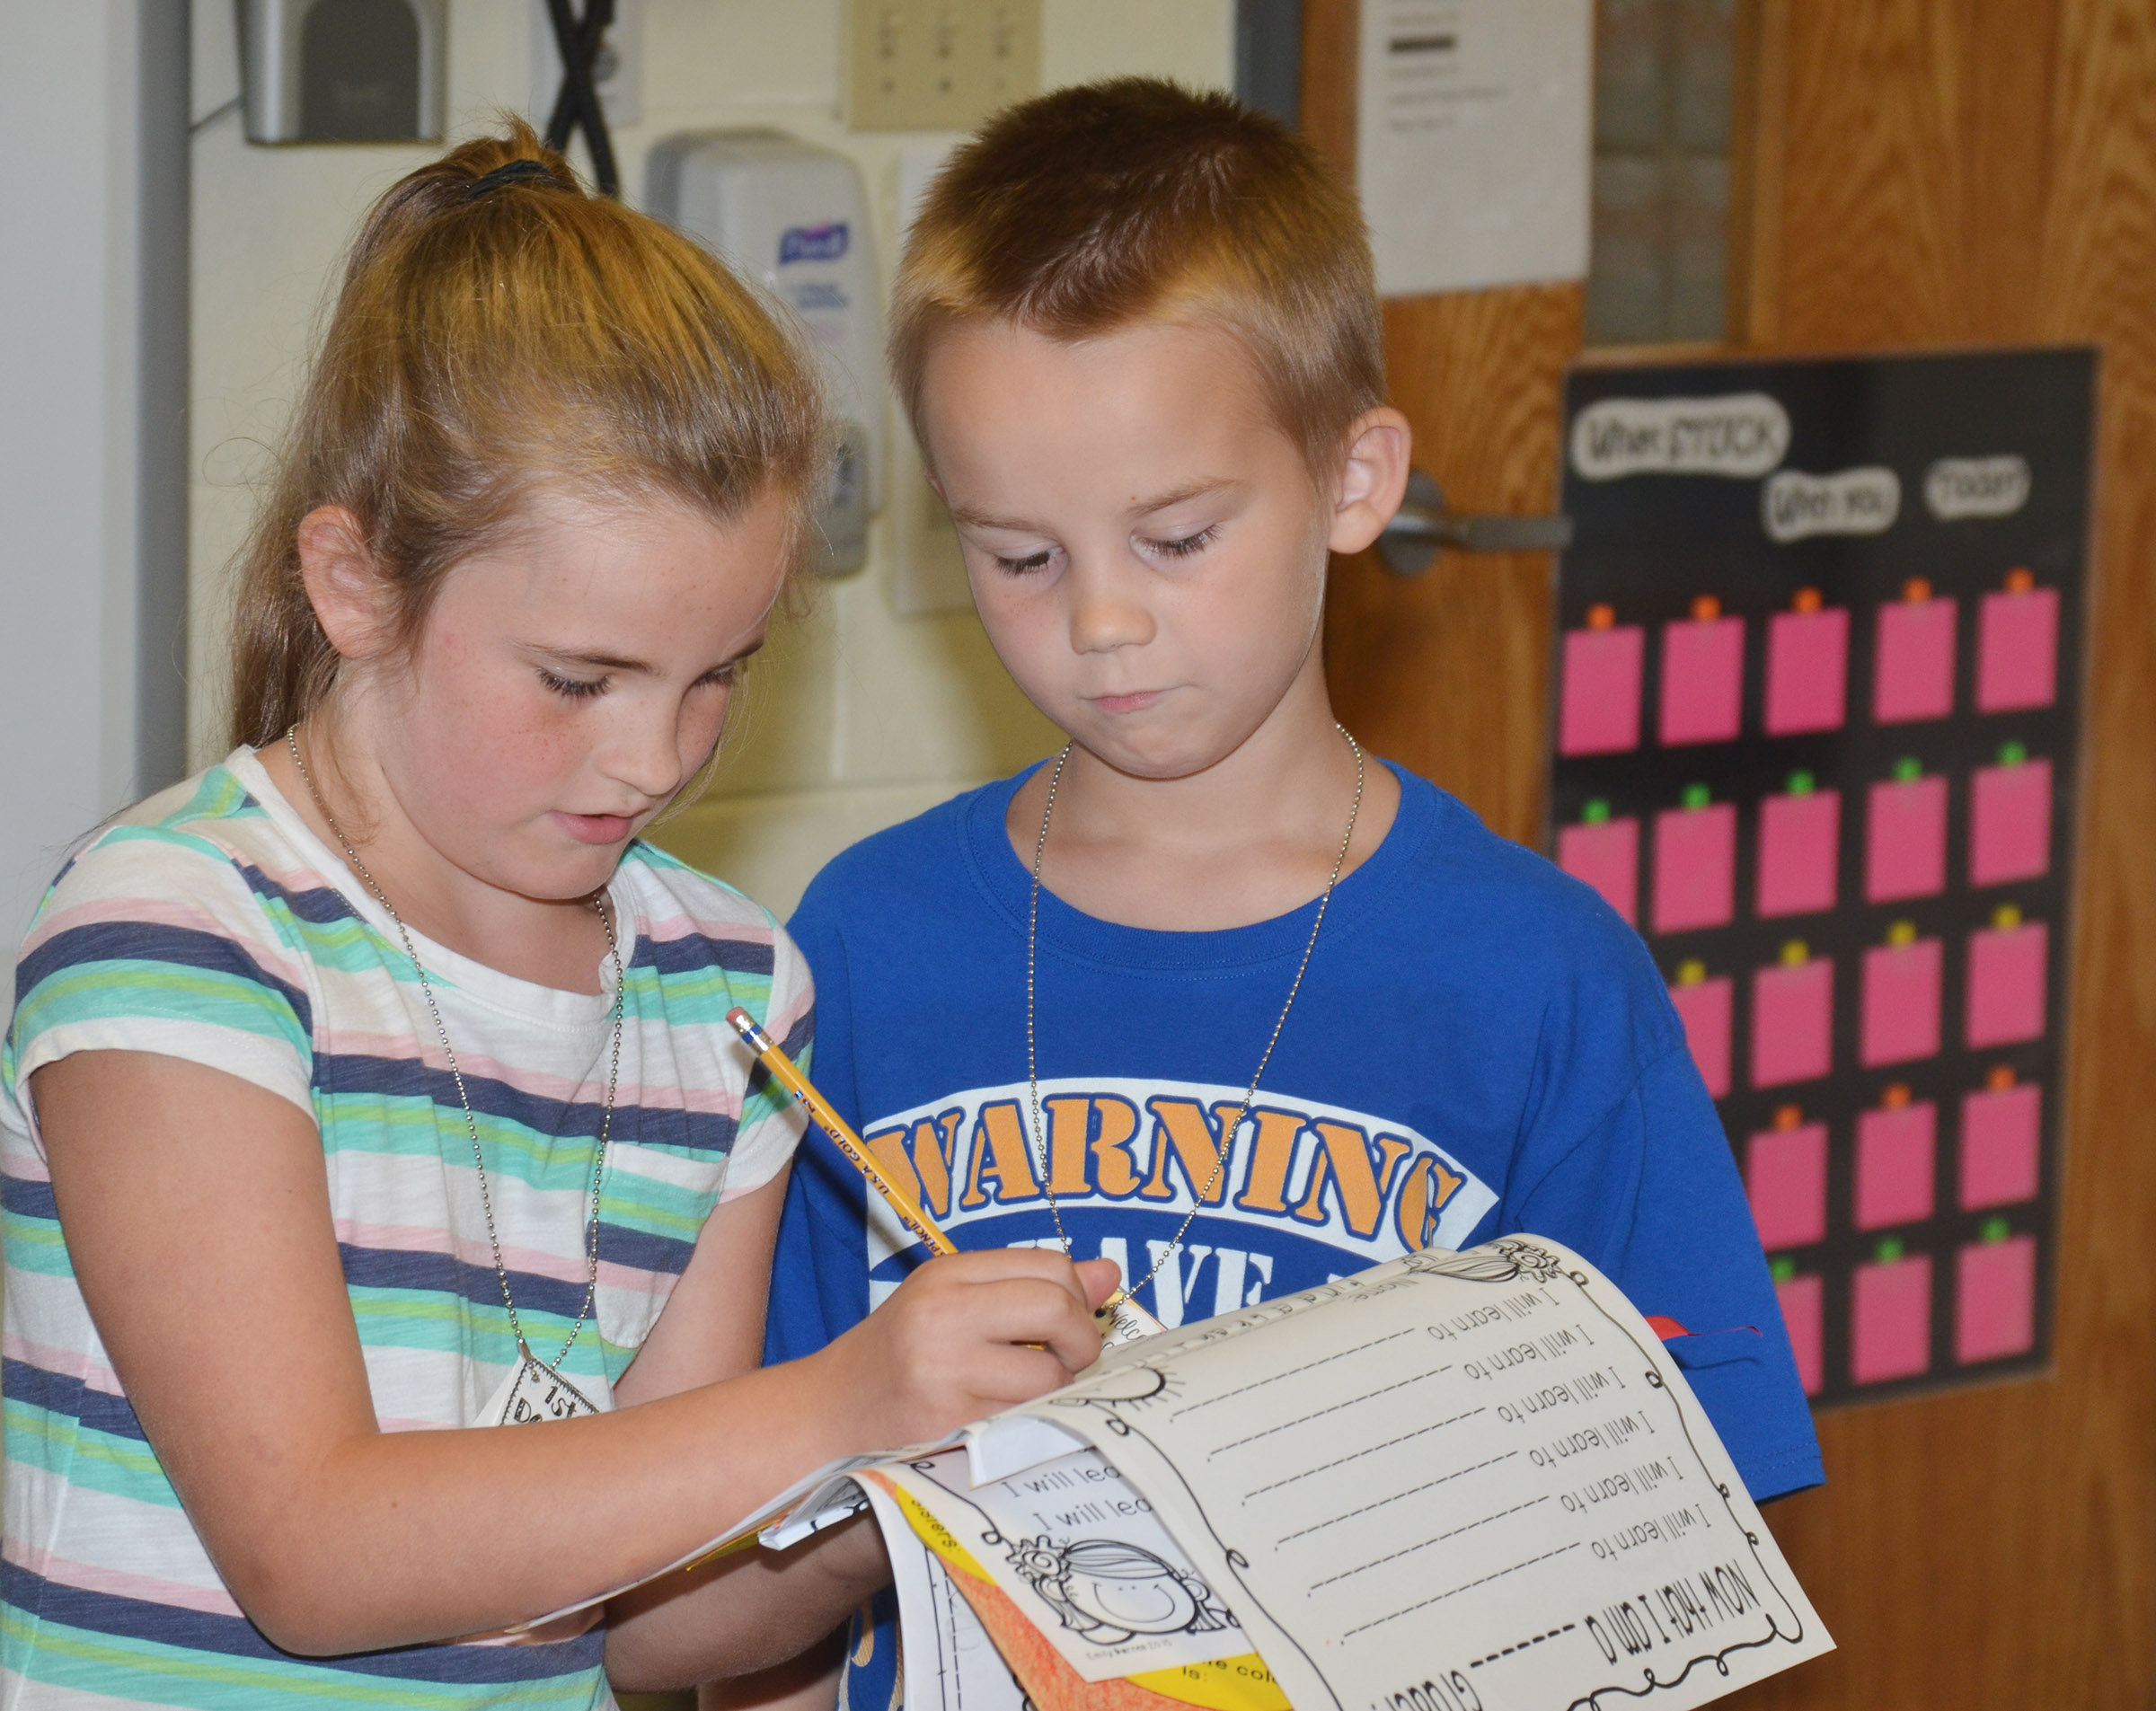 CES second-graders Bree Farmer, at left, and Jackson Bates sign each other's worksheets as they get to know each other.